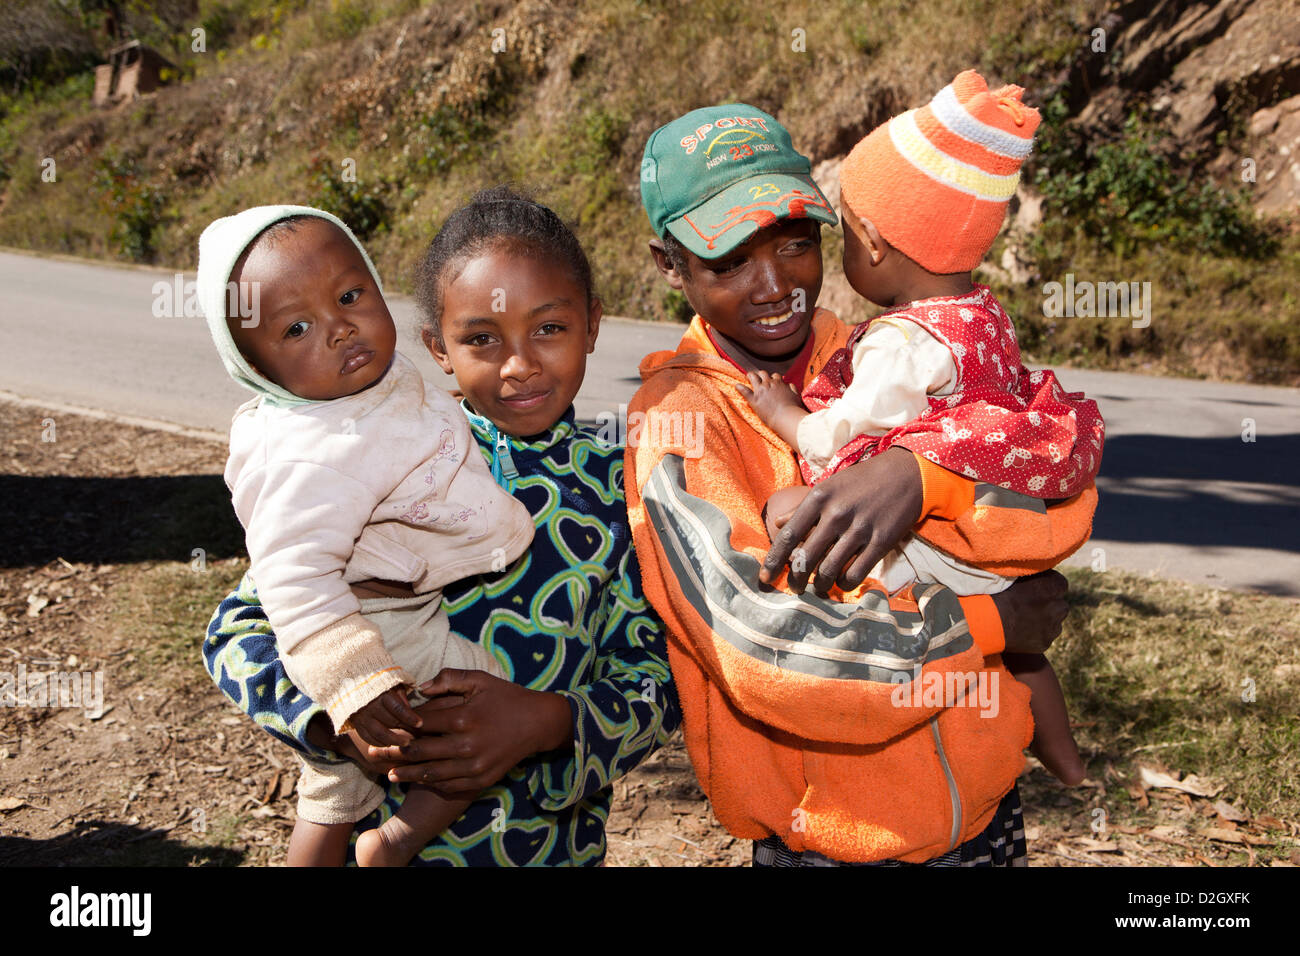 Madagascar, Ambohimahasoa, young Malagasy people with children - Stock Image